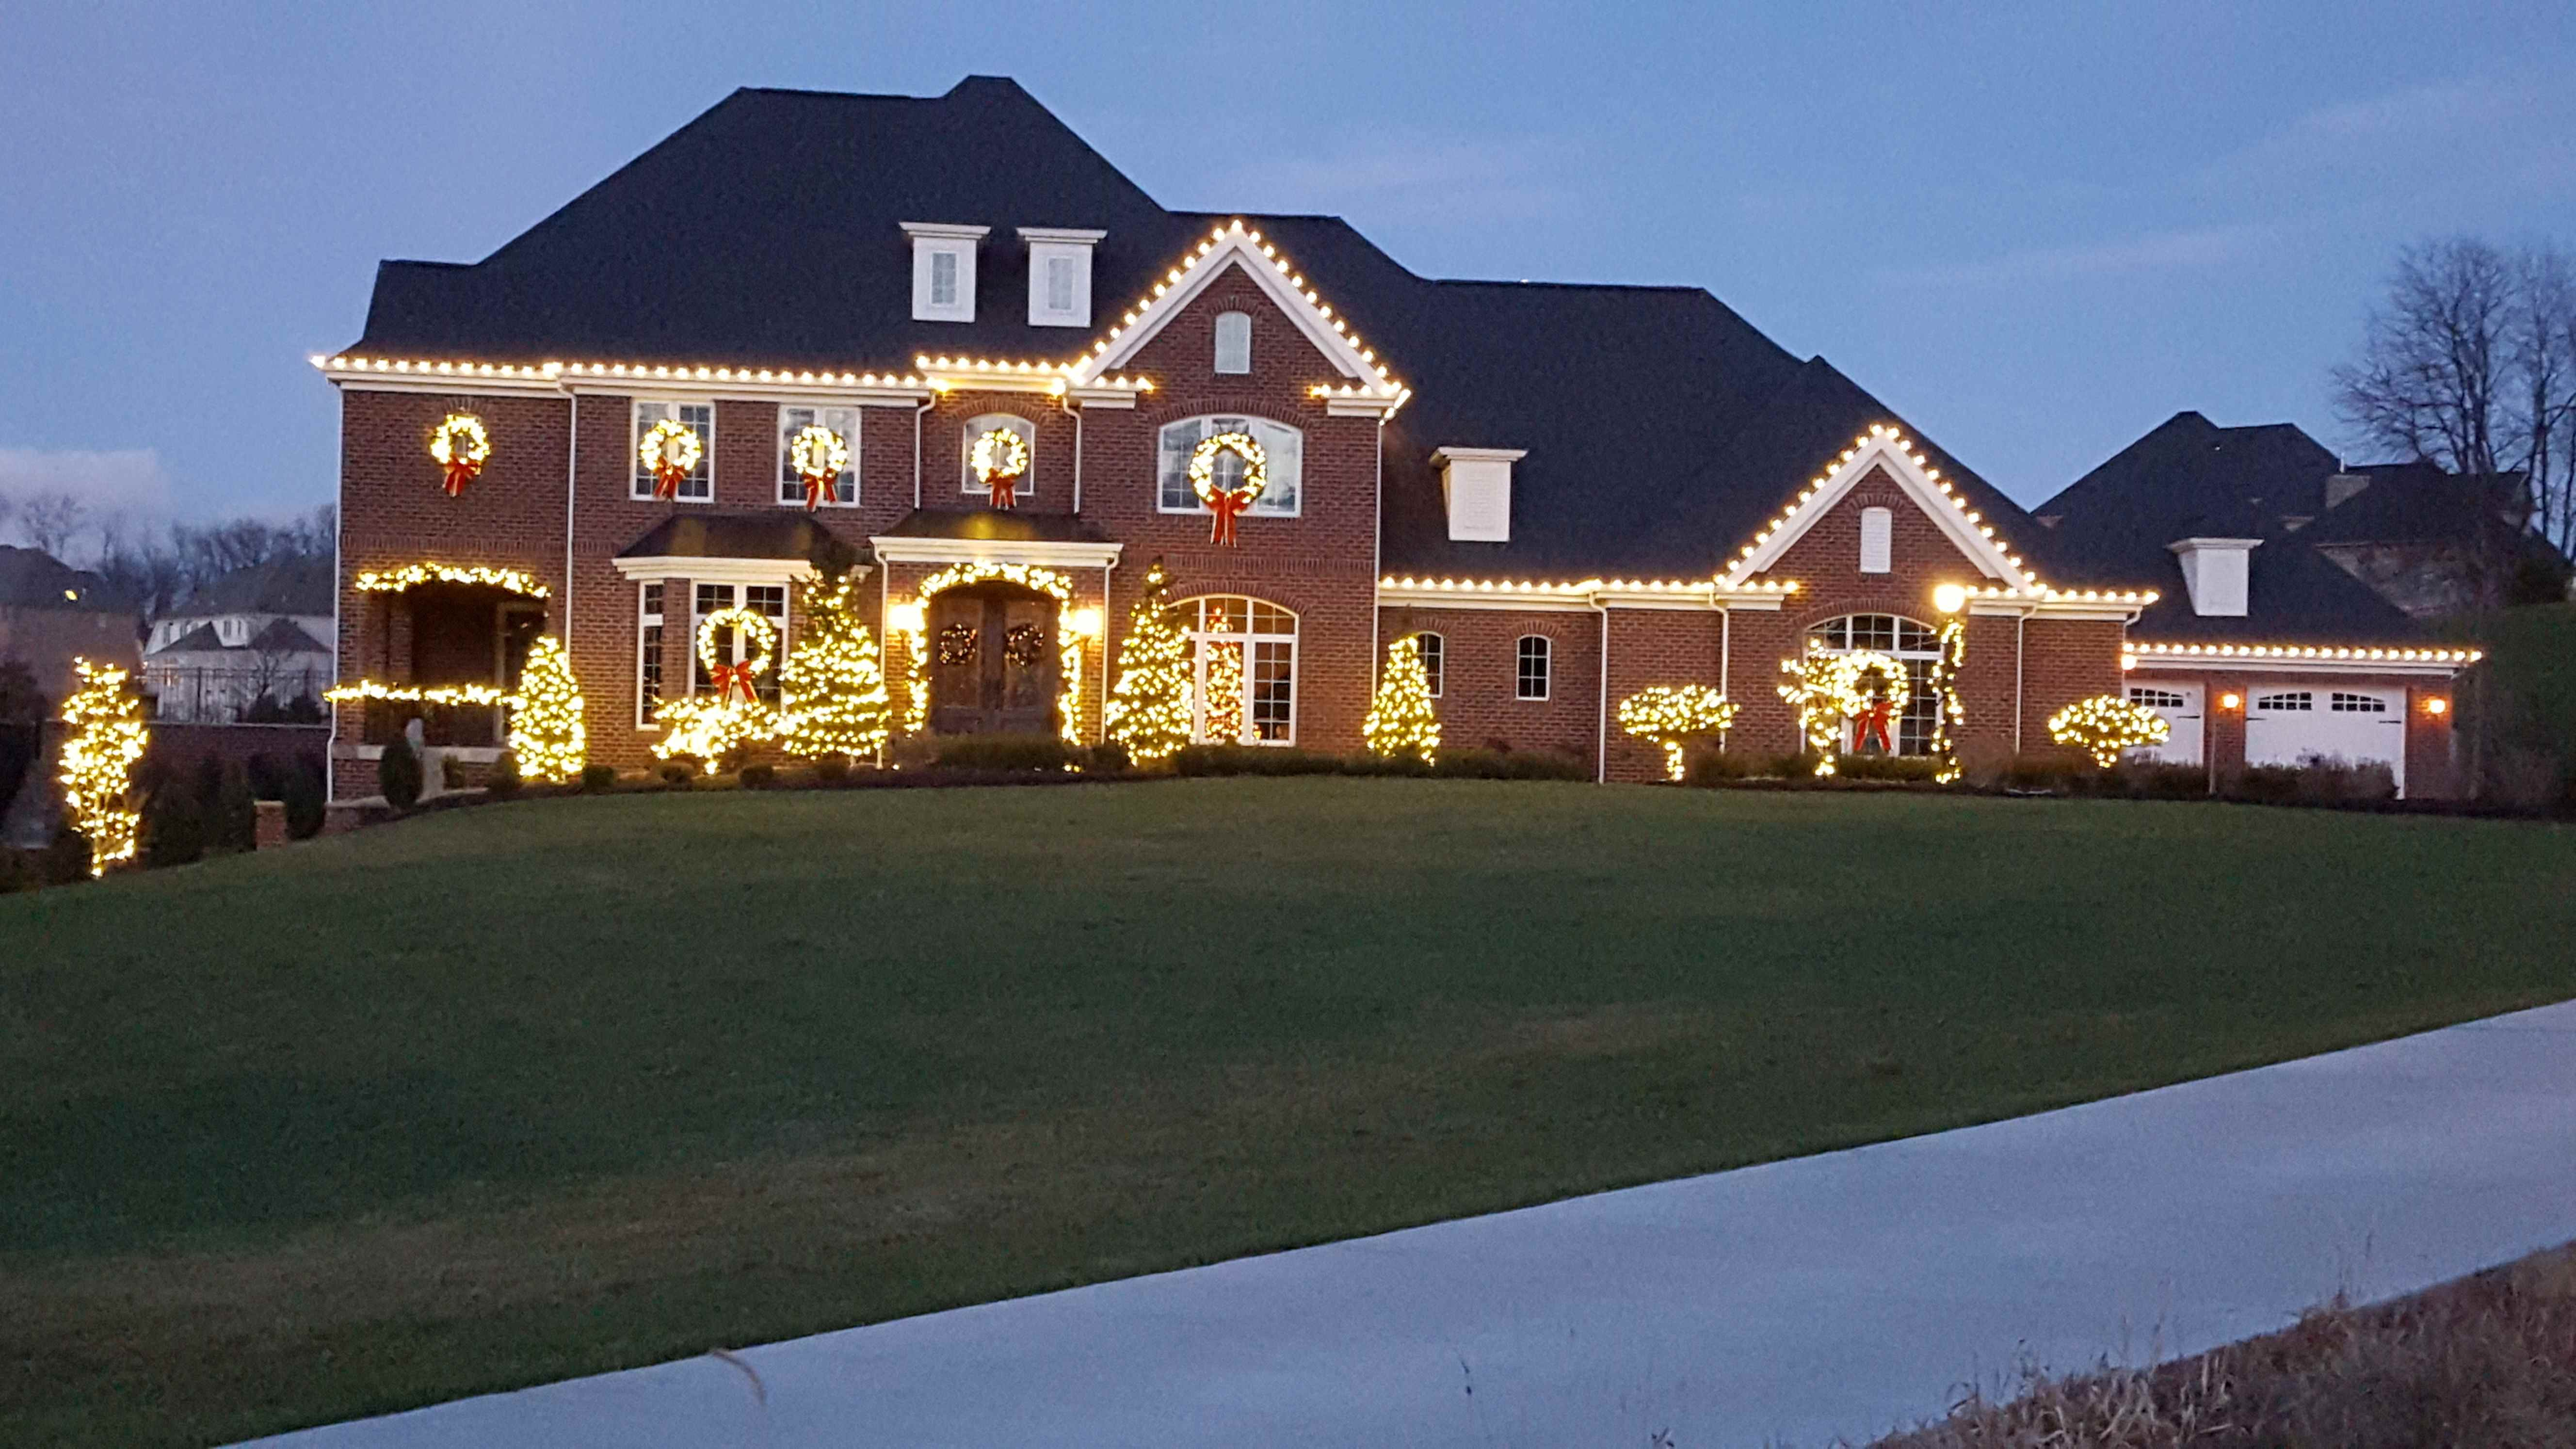 House With Holiday Lights on Trees